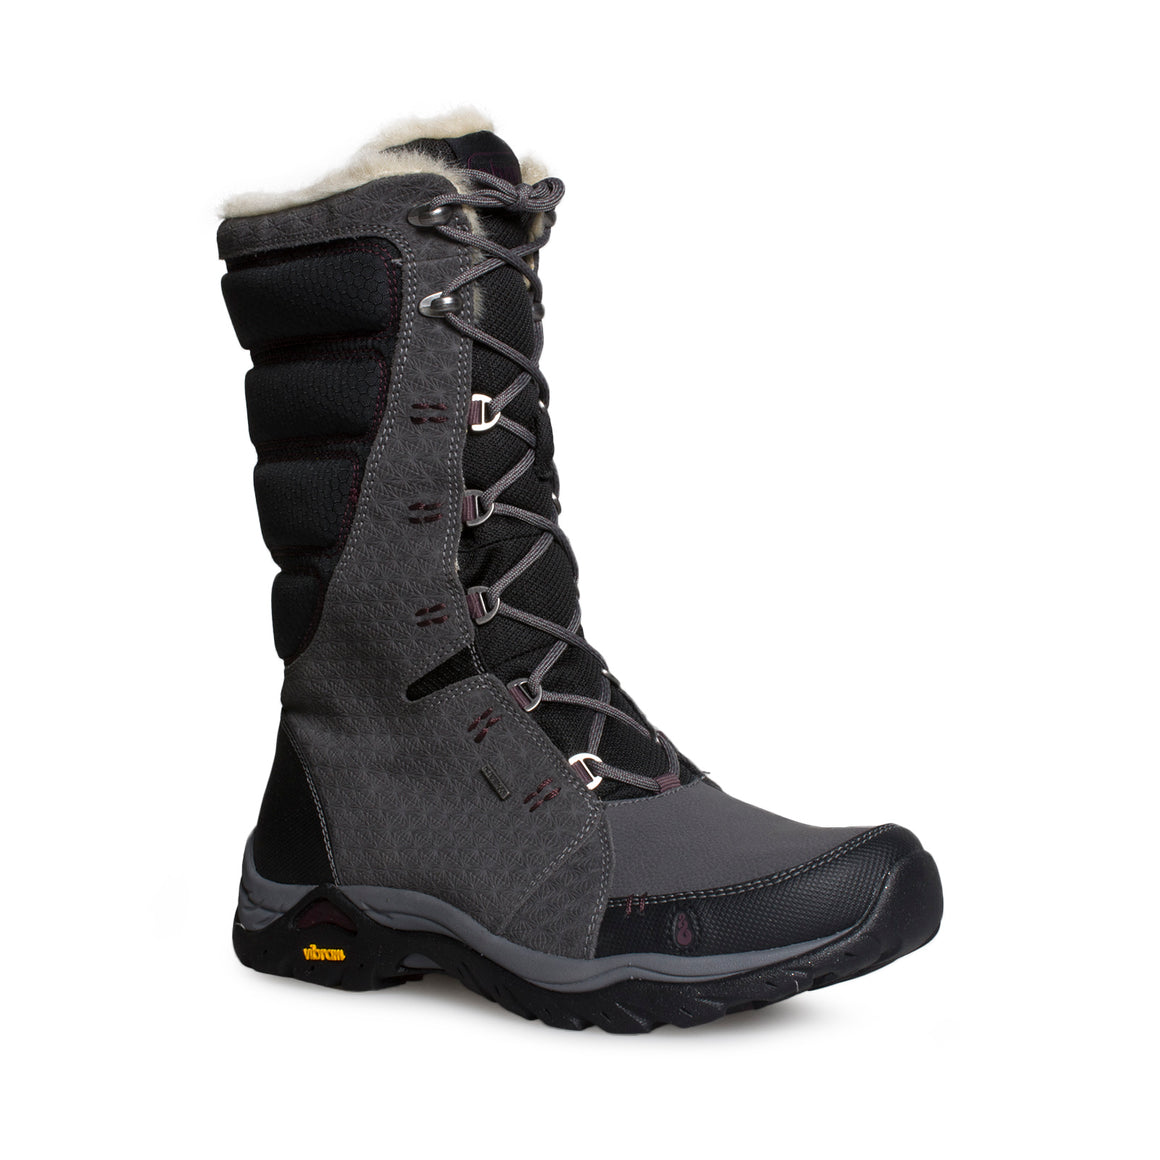 AHNU Northridge Star Suede Insulated WP Granite Boots - Women's